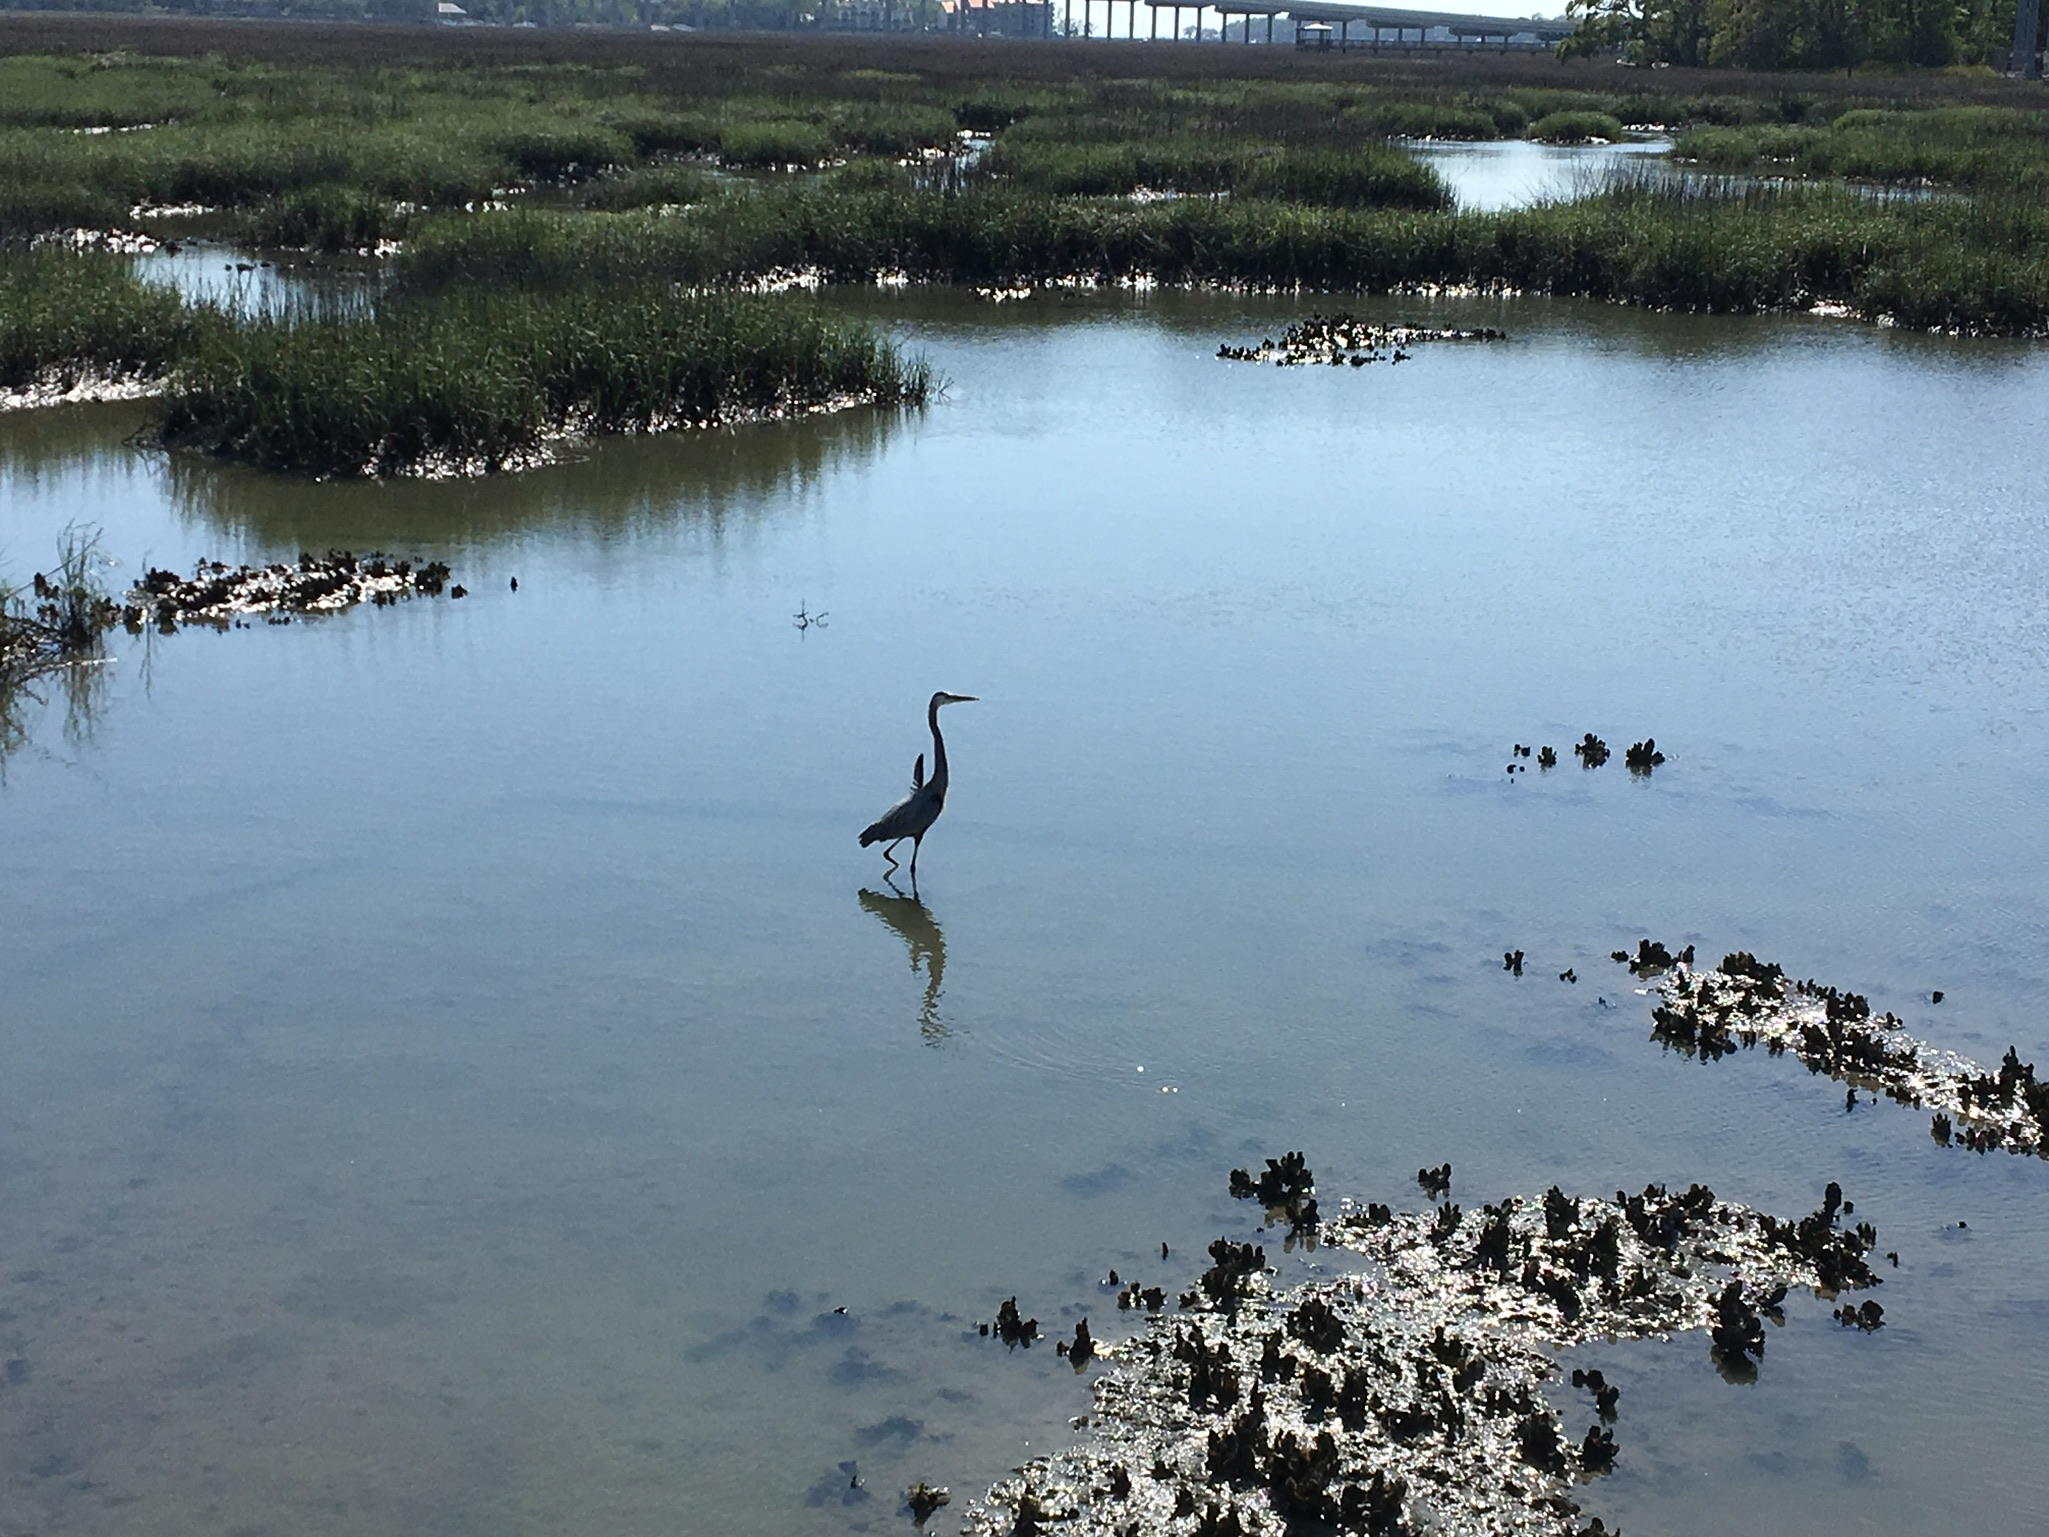 Heron in Bogue Sound